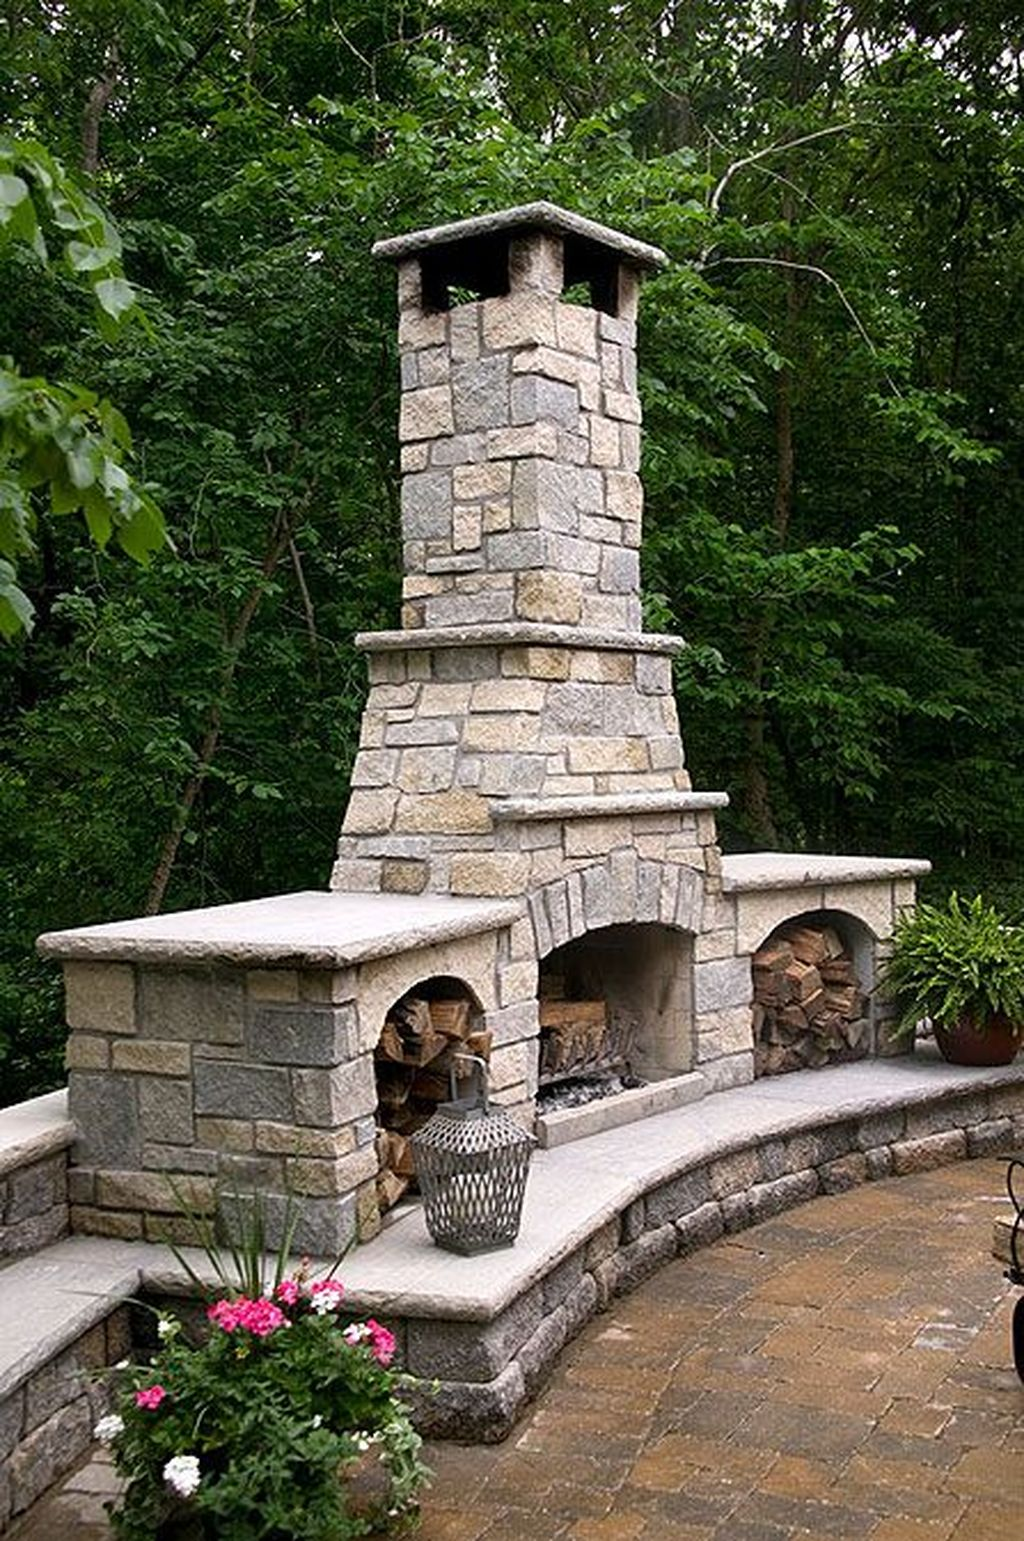 The Best Backyard Fireplace Design Ideas You Must Have 01